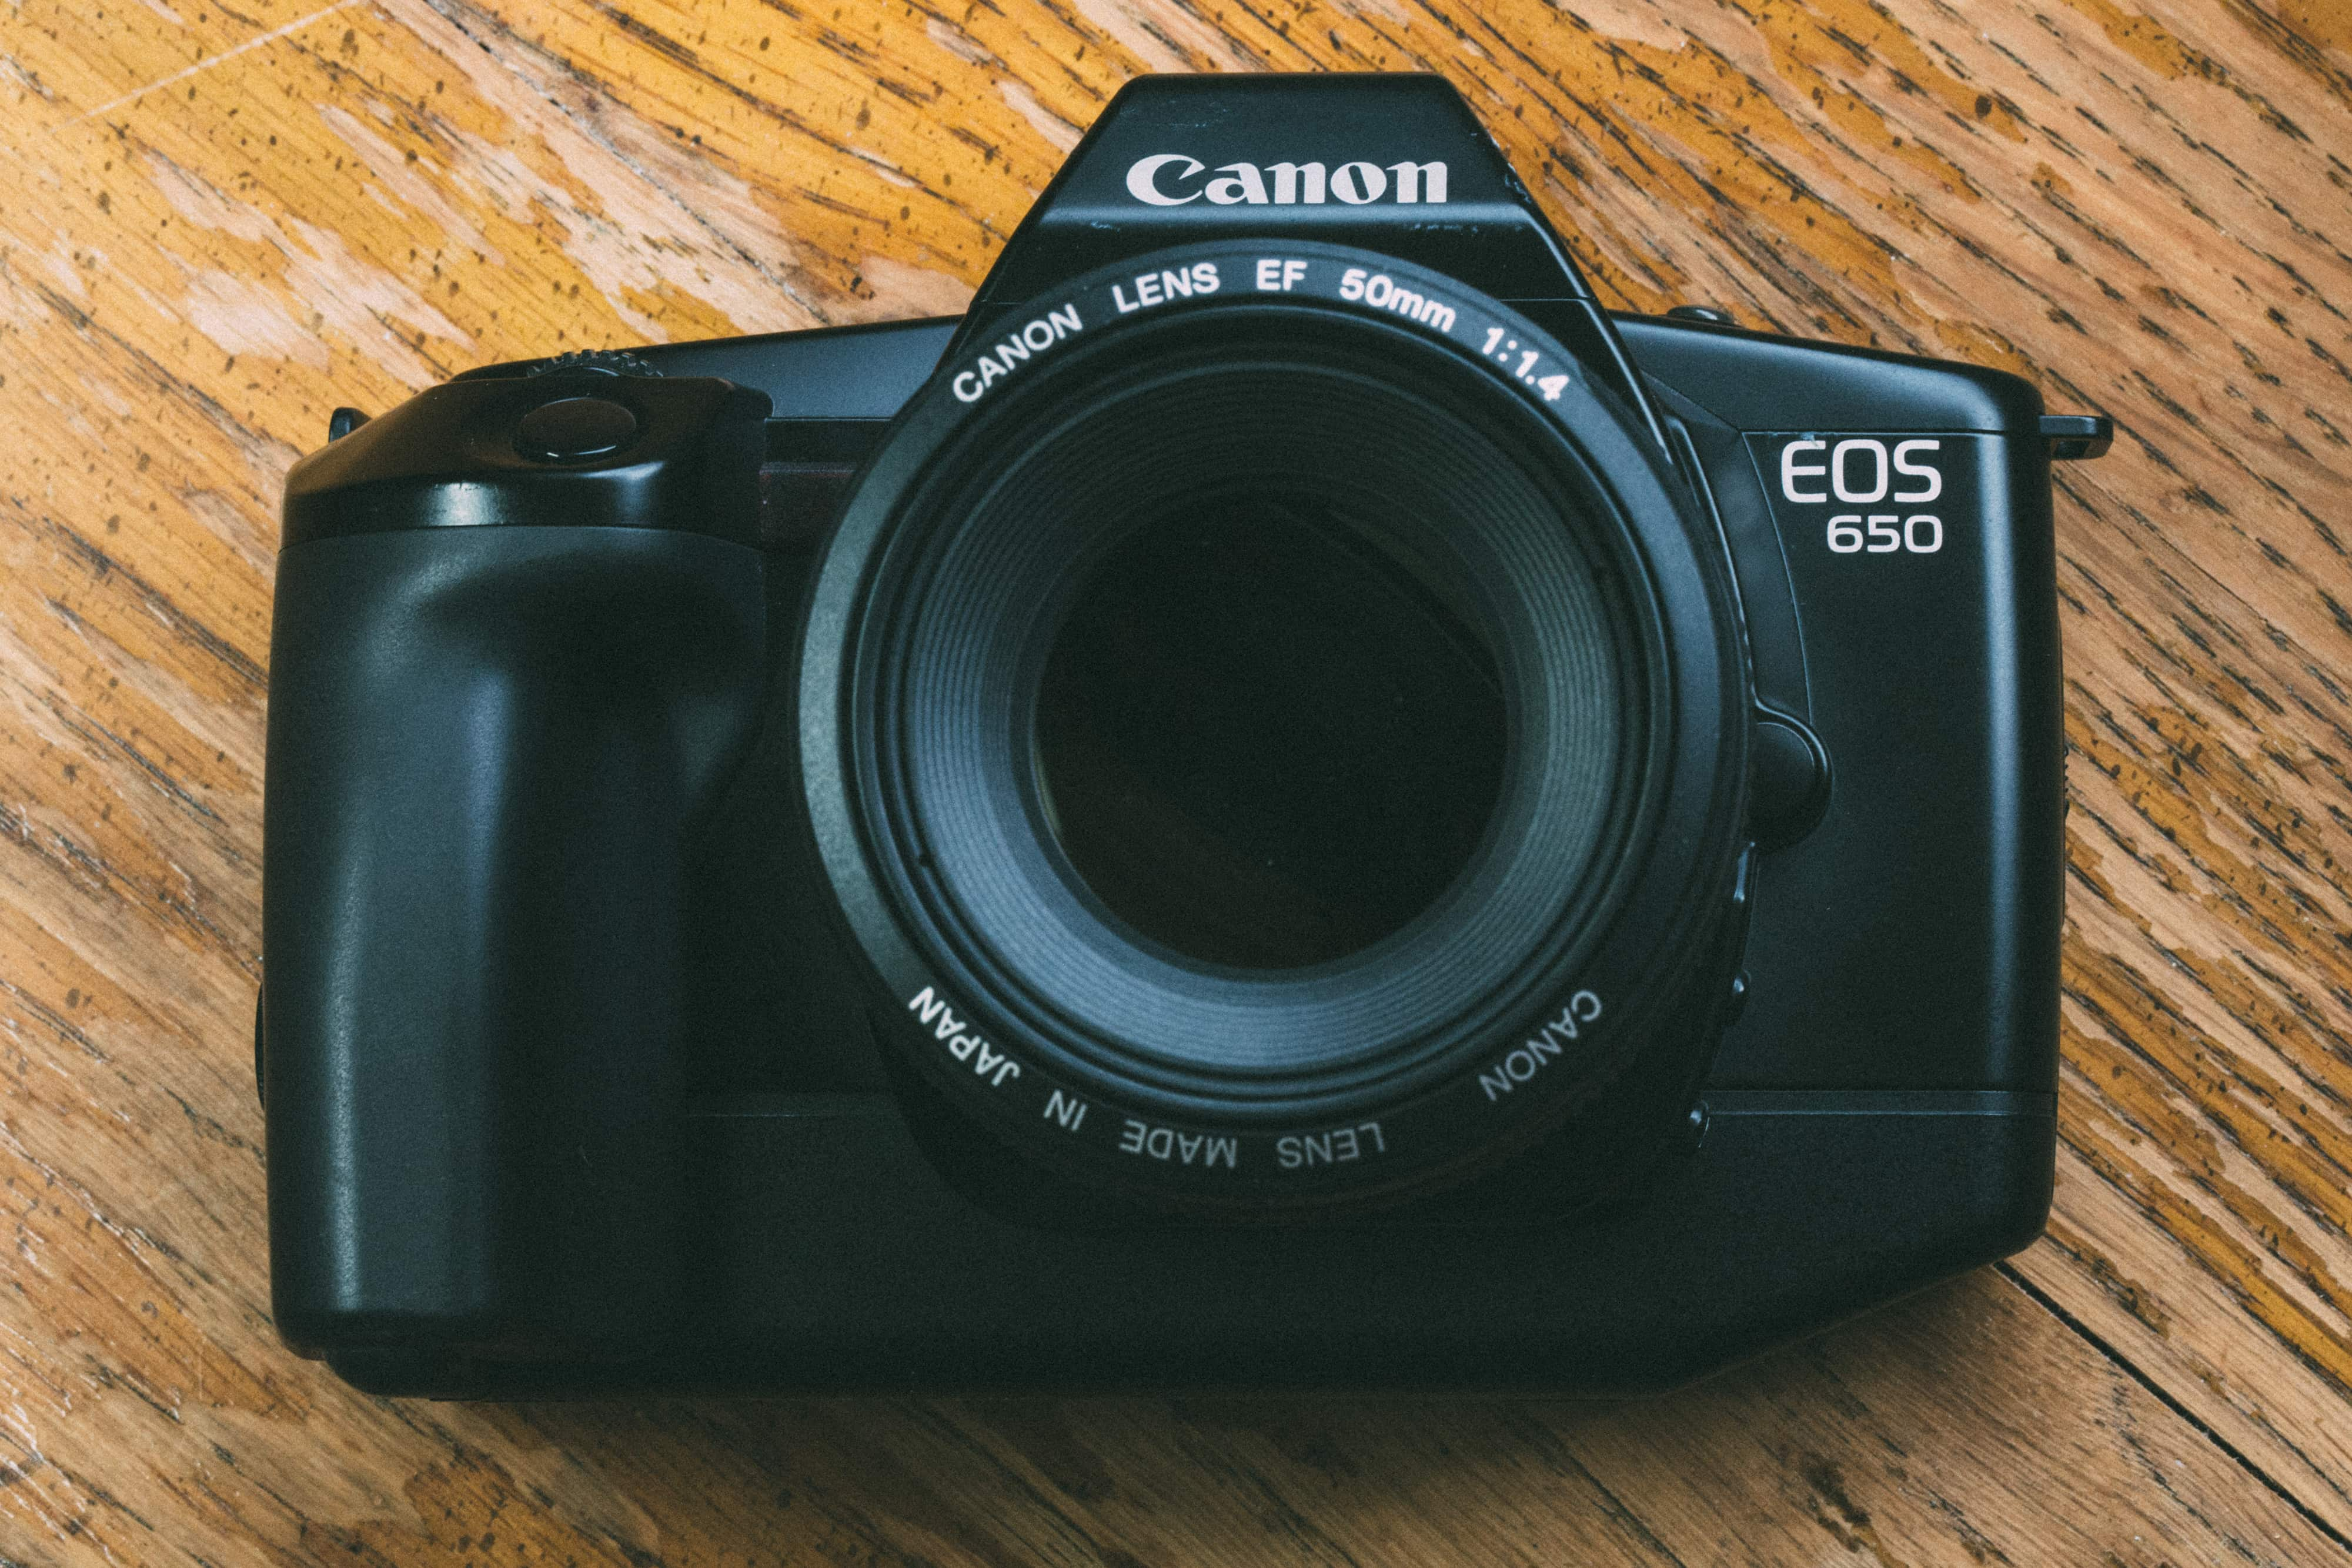 Canon eos 650 camera from front on wood background